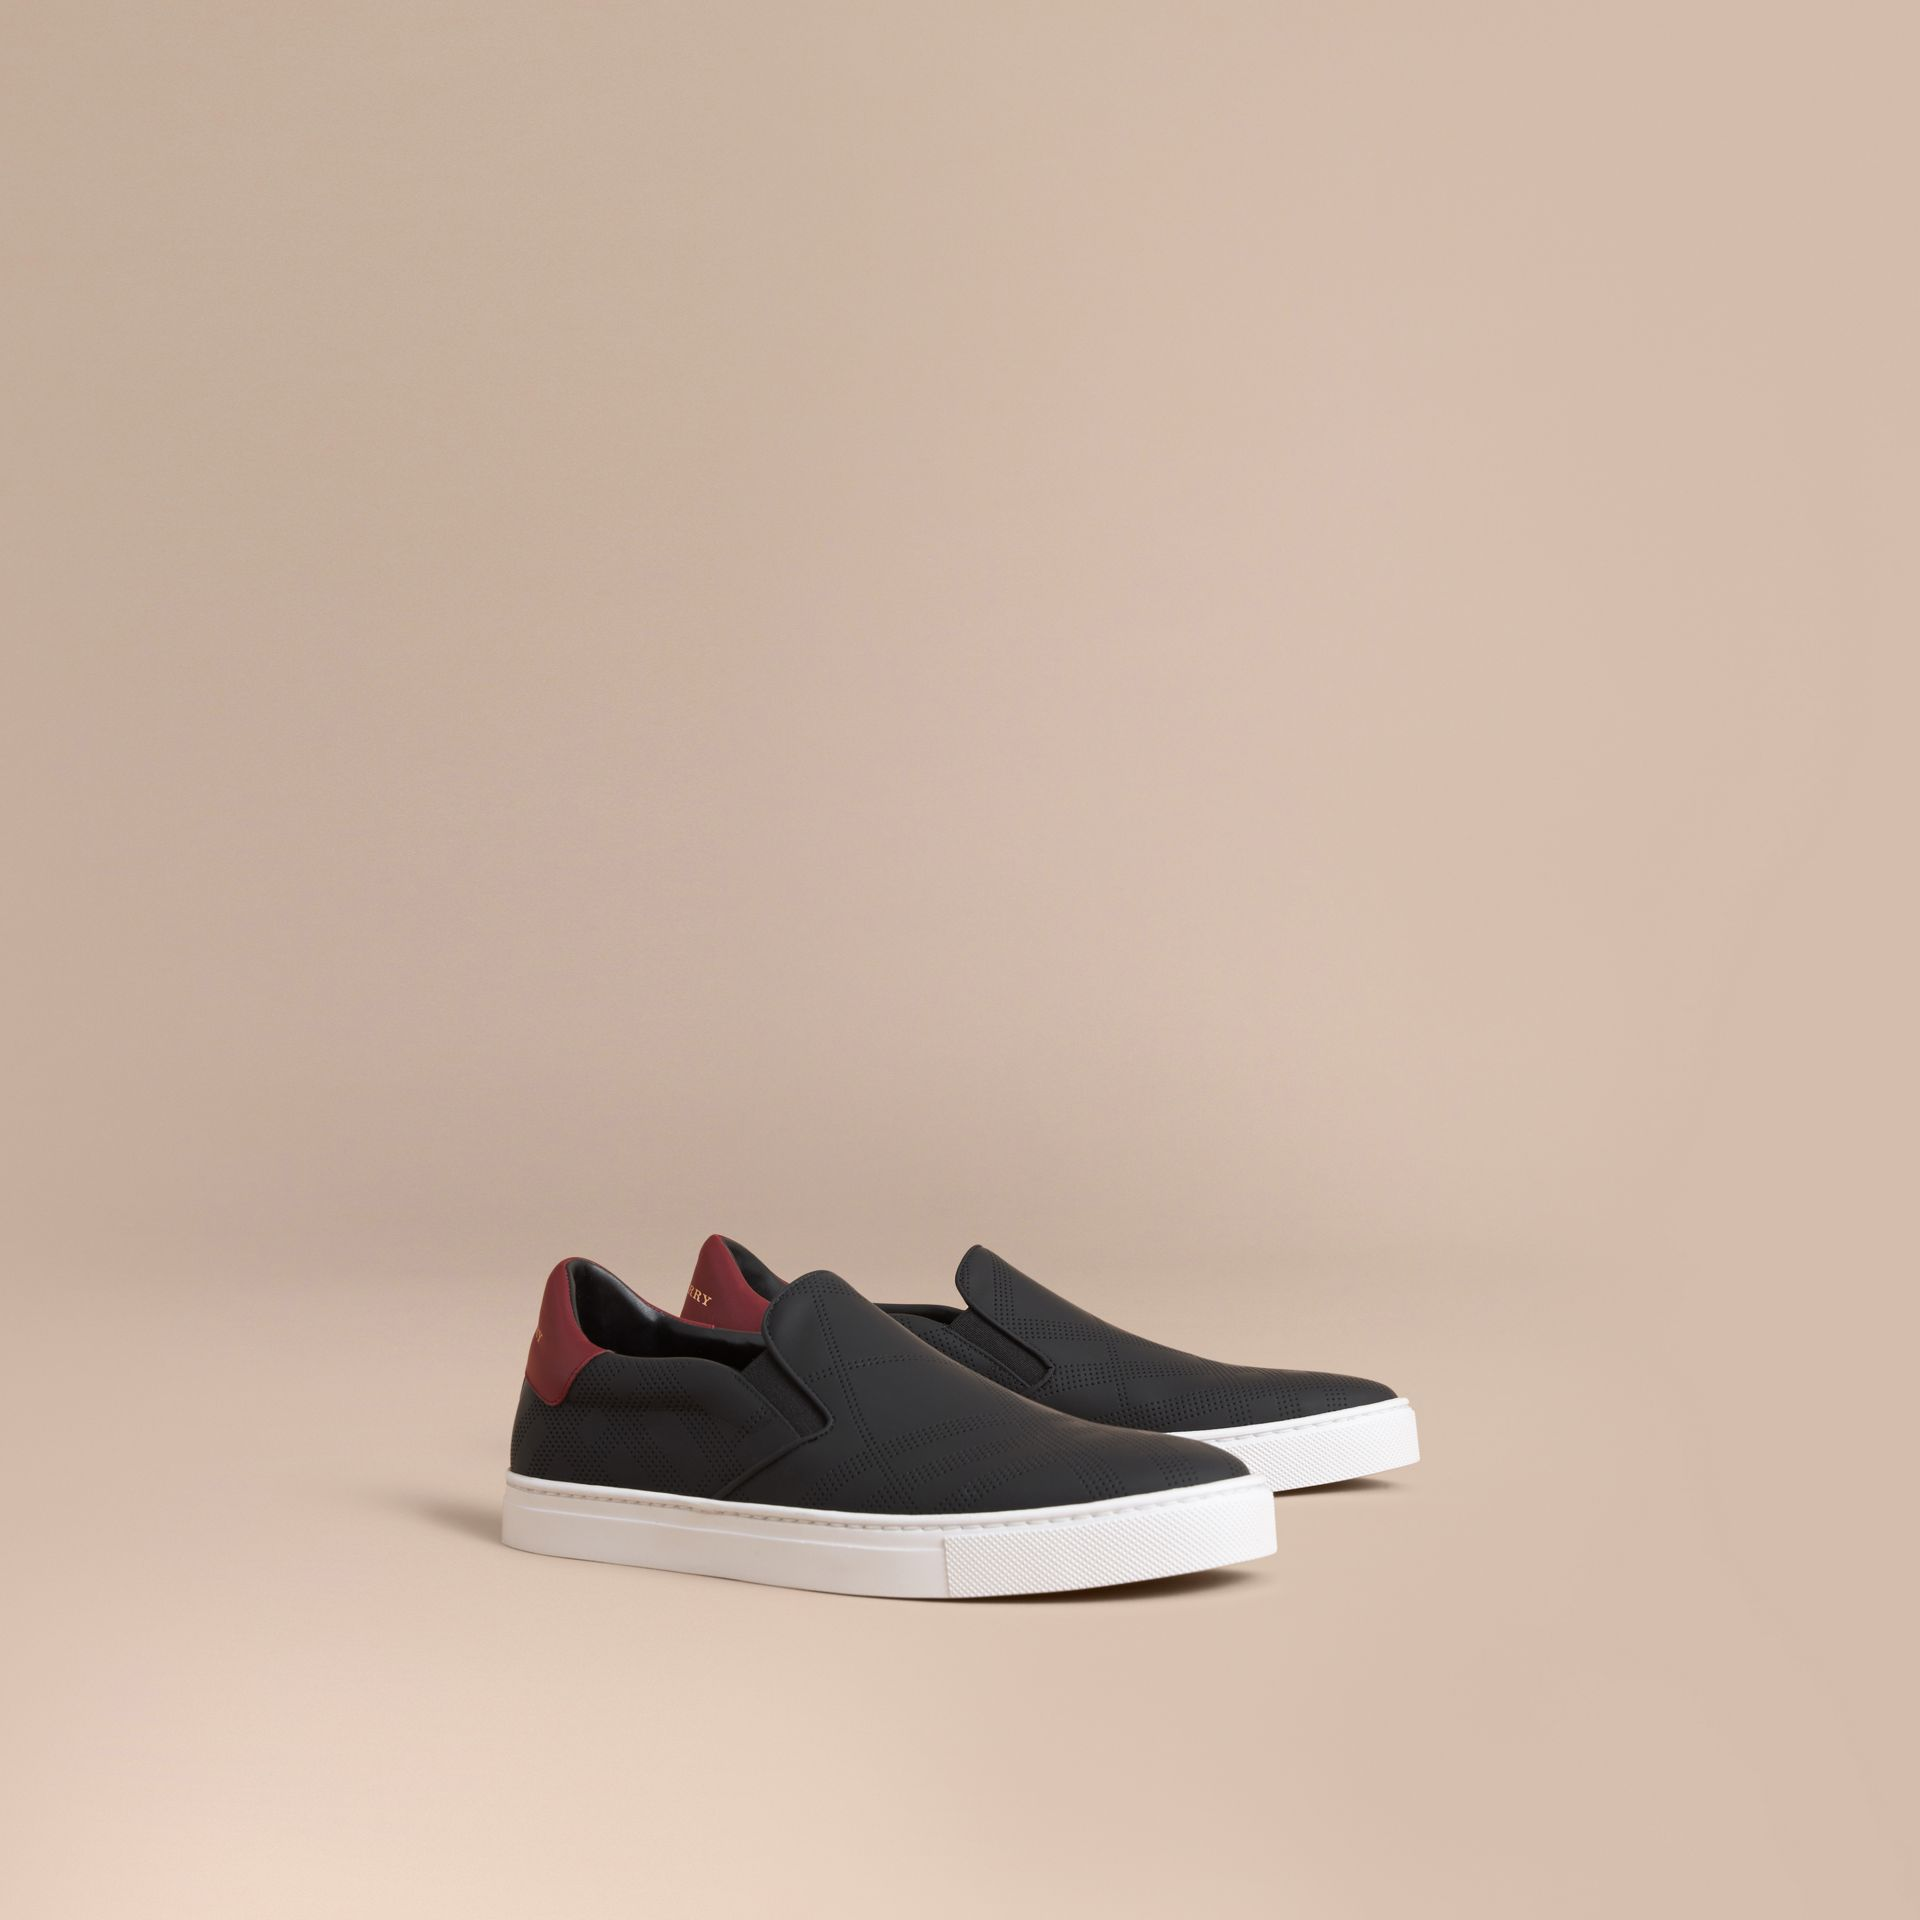 Perforated Check Leather Slip-on Trainers in Black/deep Claret Melange - Men | Burberry - gallery image 1